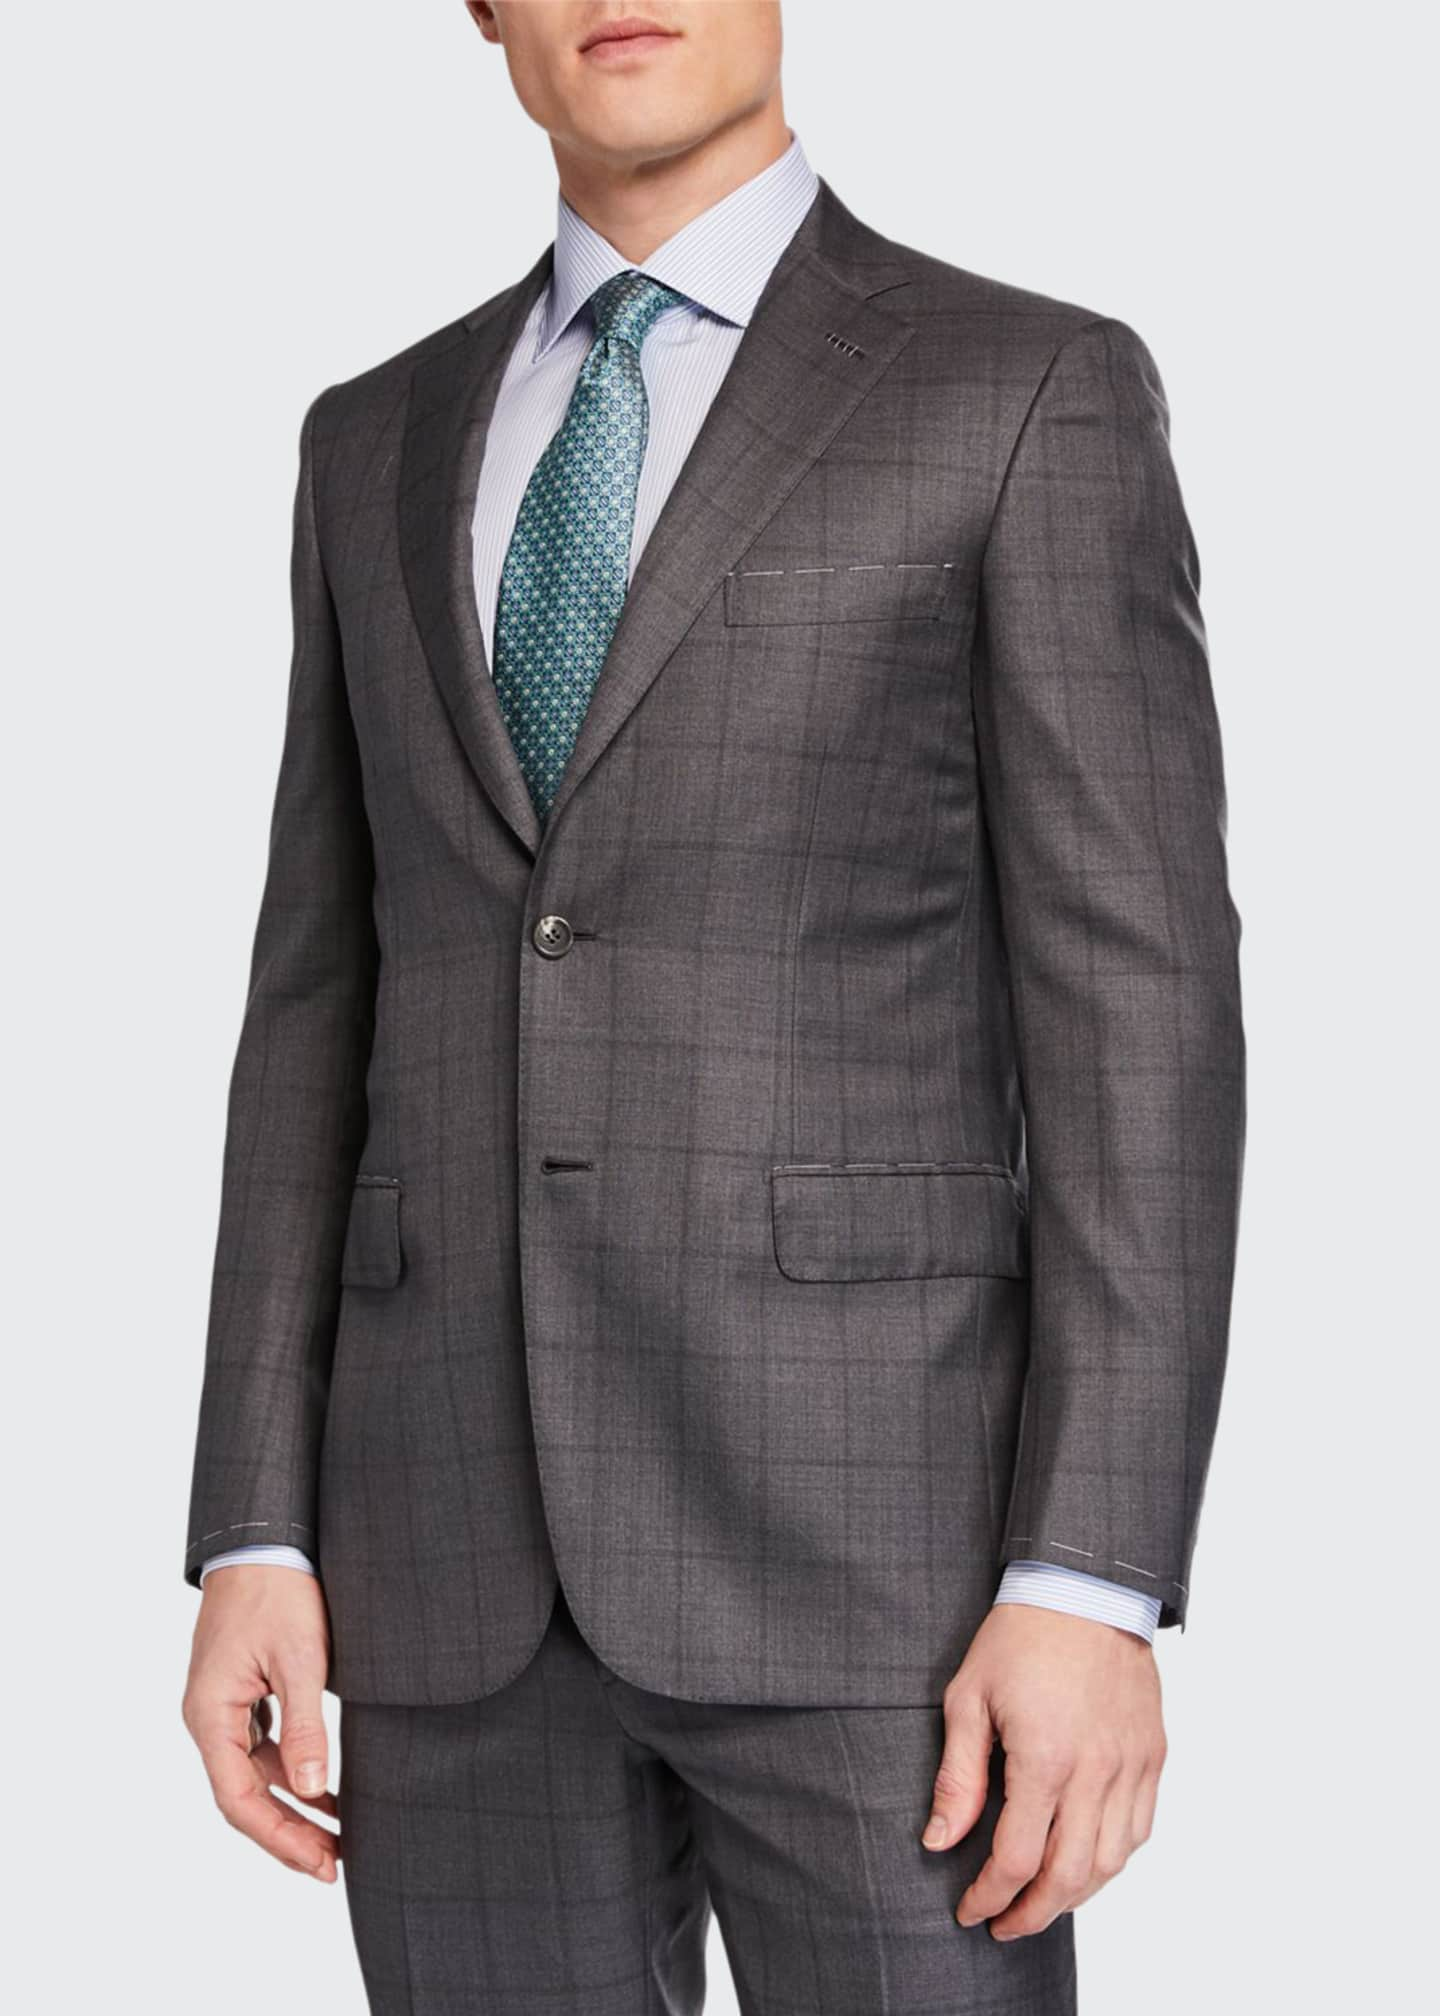 Brioni Men's Windowpane Two-Piece Suit